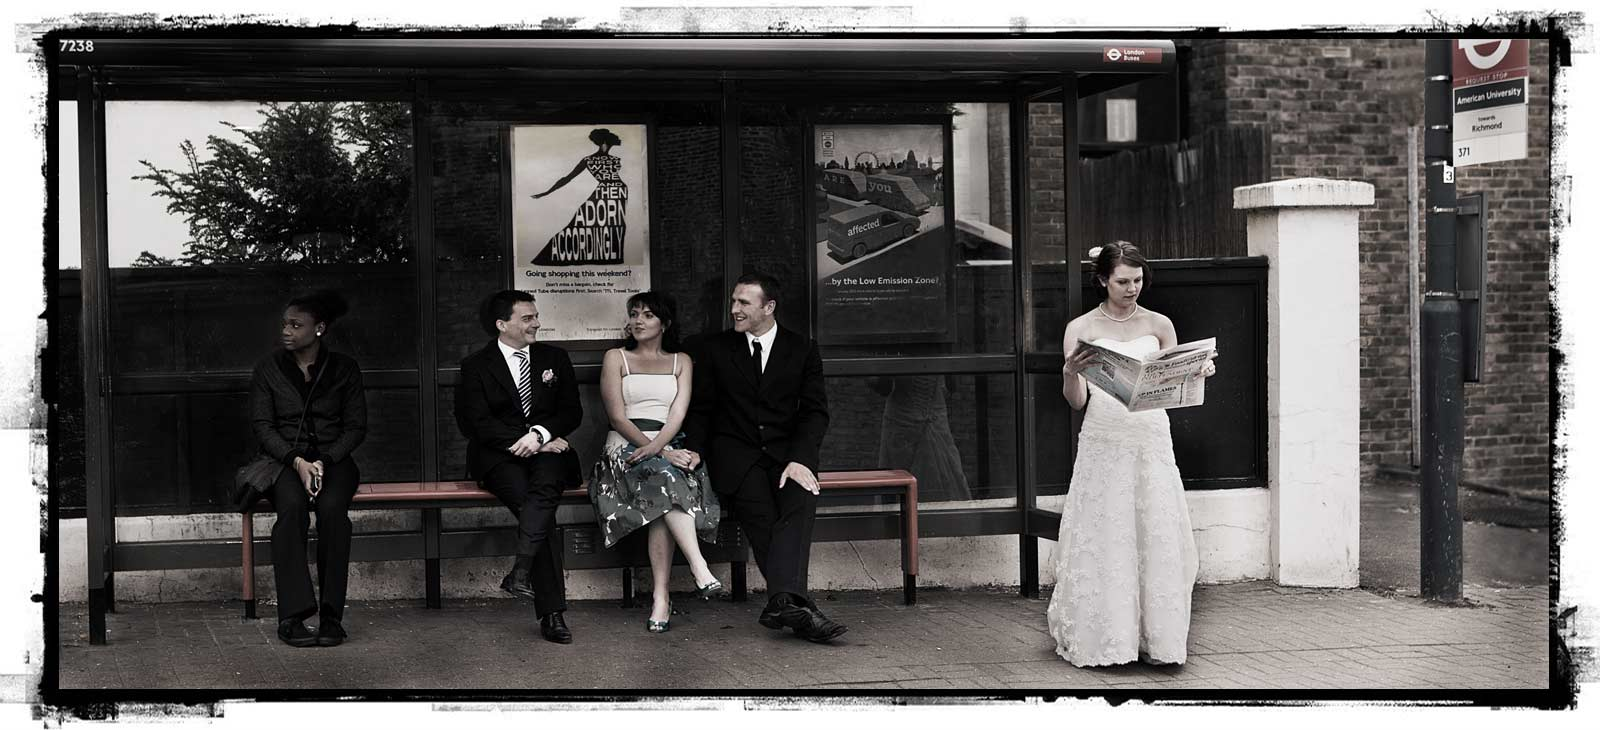 Richmond bus stop wedding image